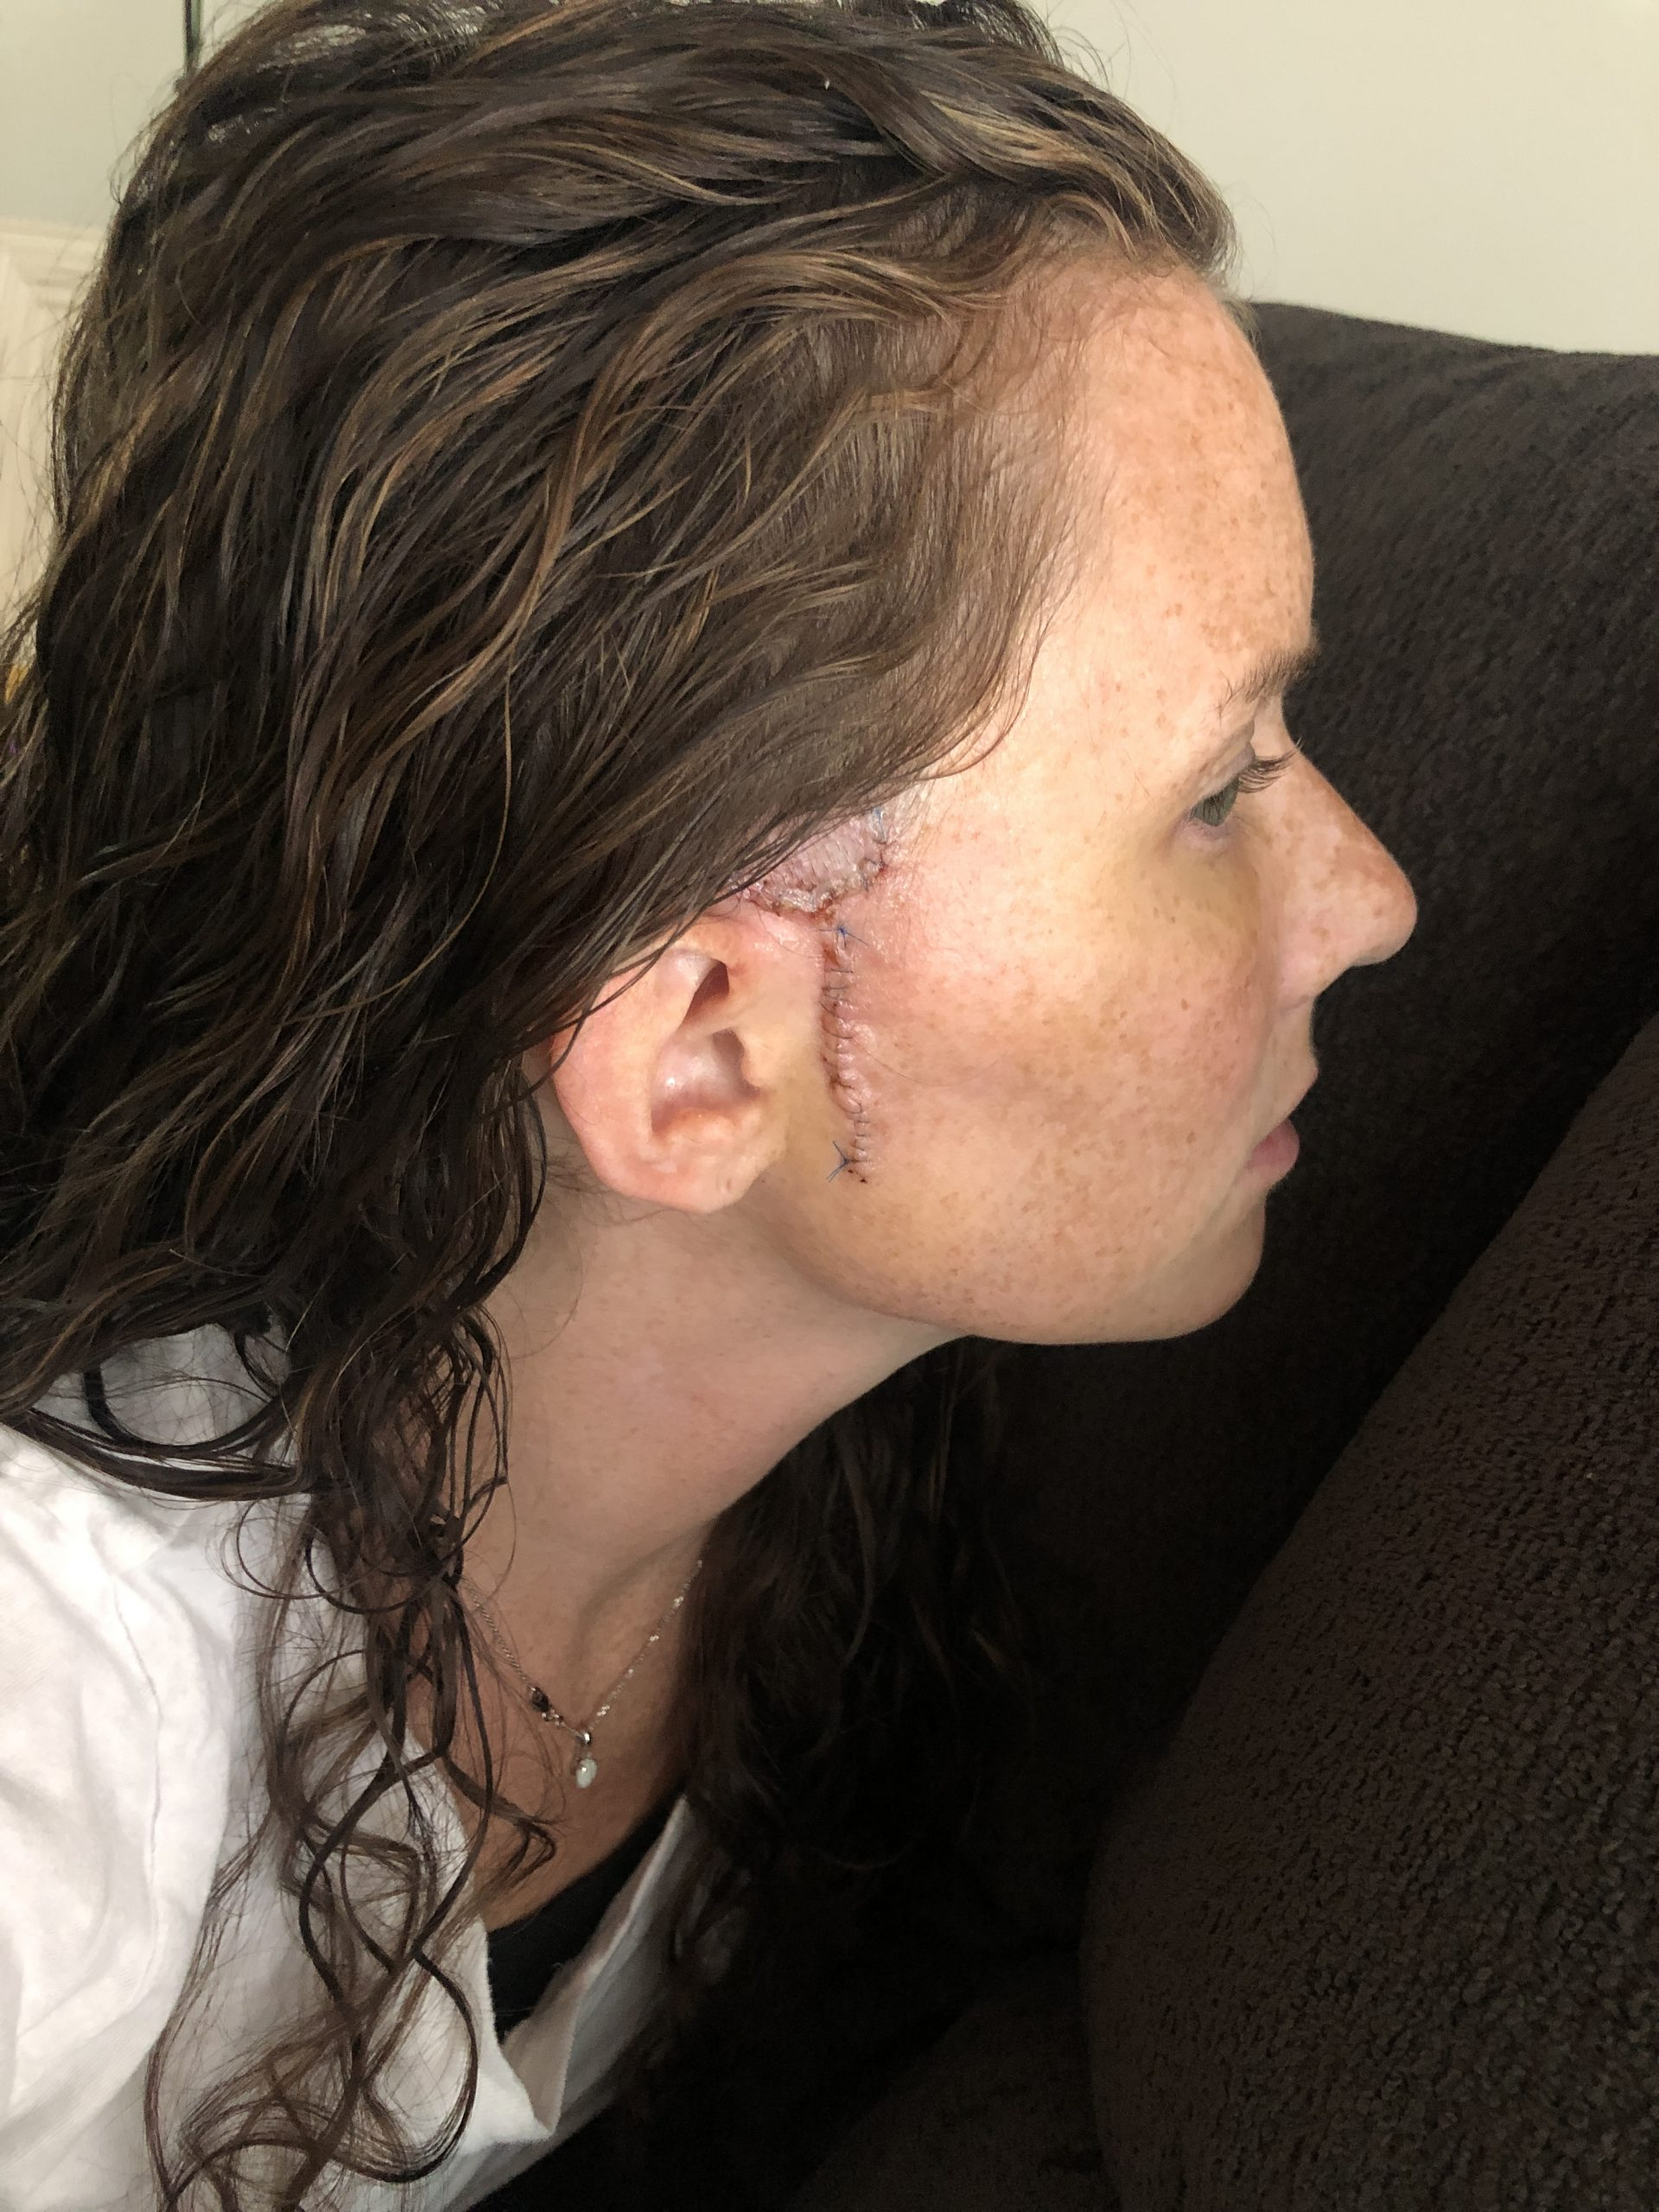 Woman post Mohs Surgery with Scar on side of Face and bruising around eye